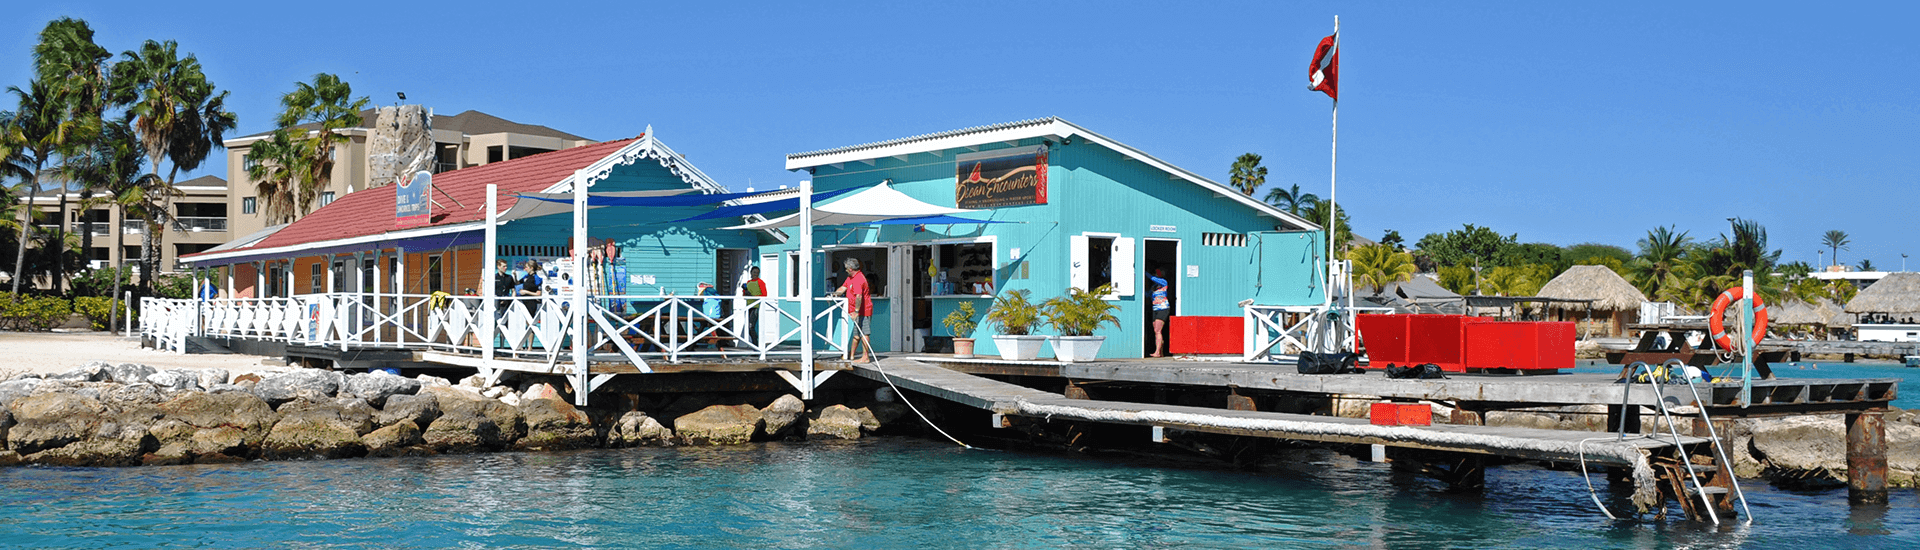 Ocean Encounters operates Curaçao's largest and best-equipped fleet of fast, twin-engine dive boats. The shop provides daily two-tank morning dives, afternoon dives and a range of special dive adventures.